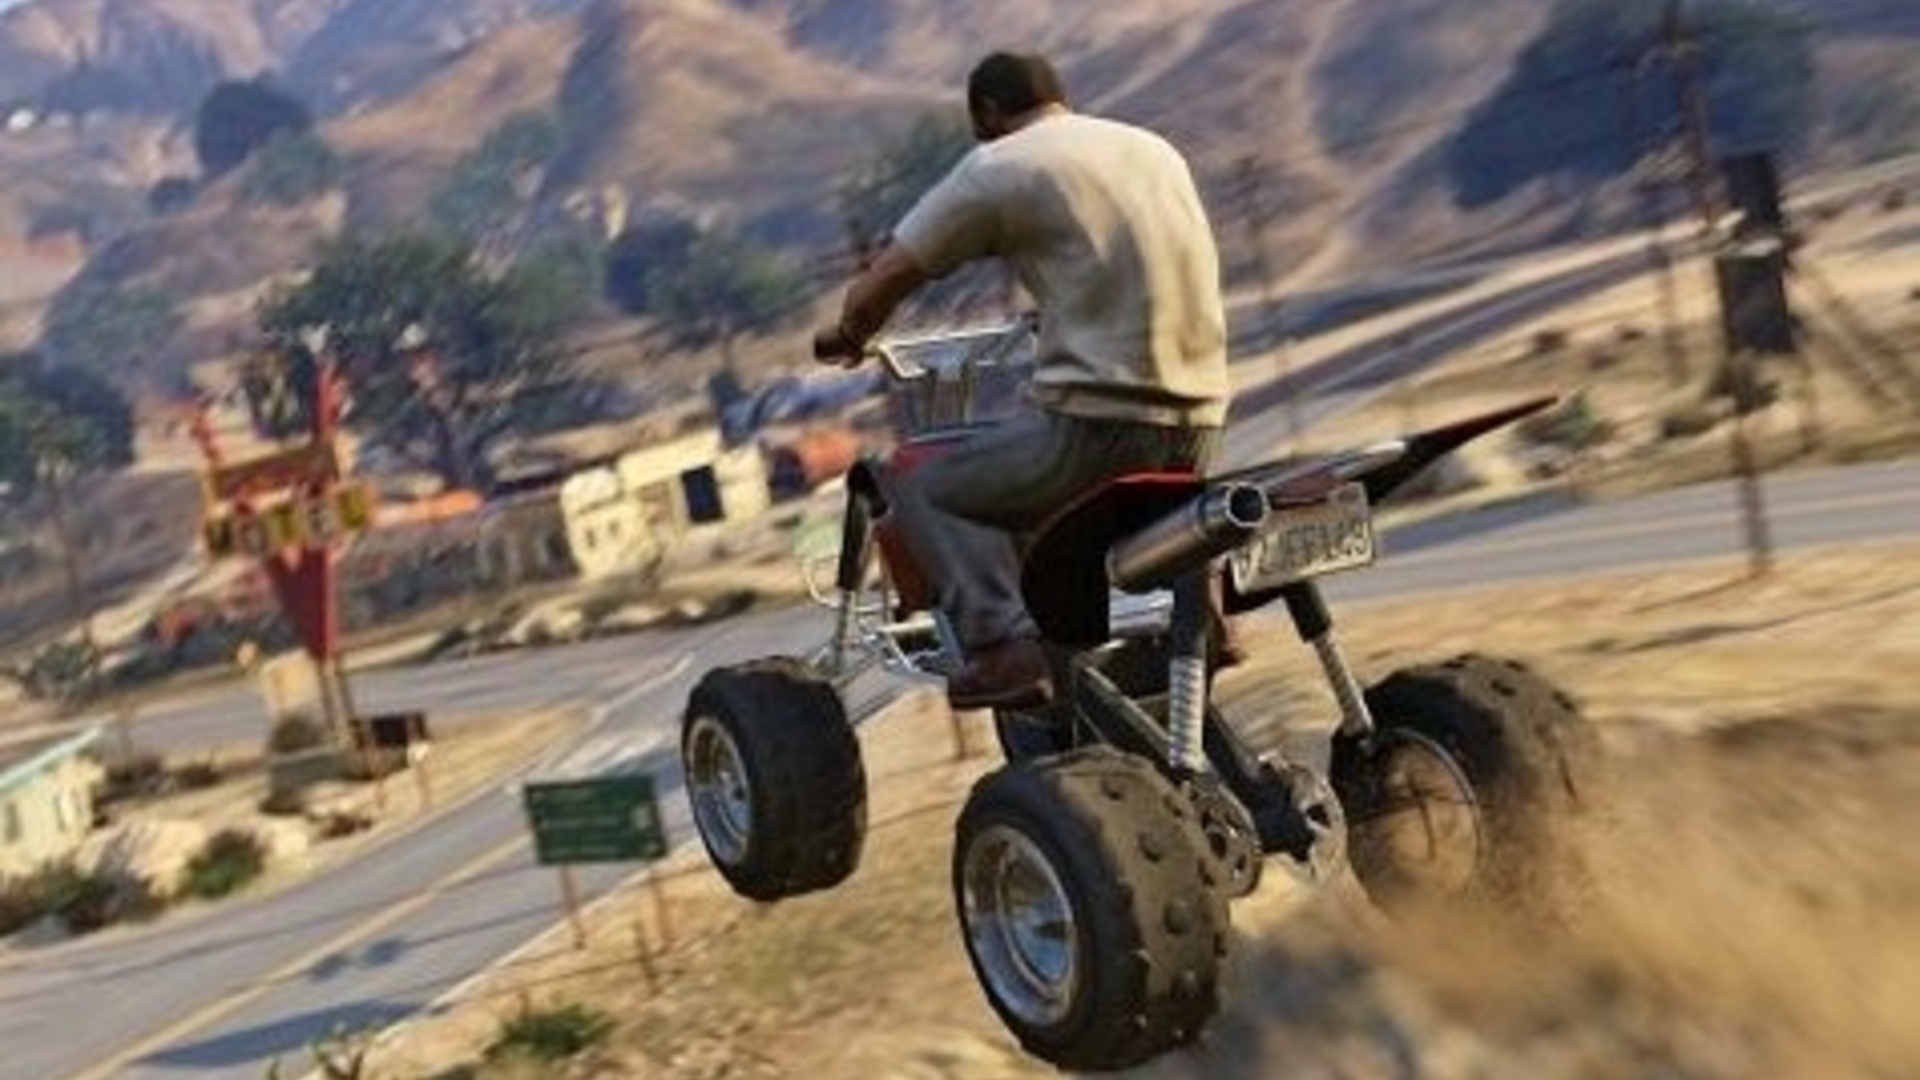 Rockstar has something next-gen coming by Q1 2015